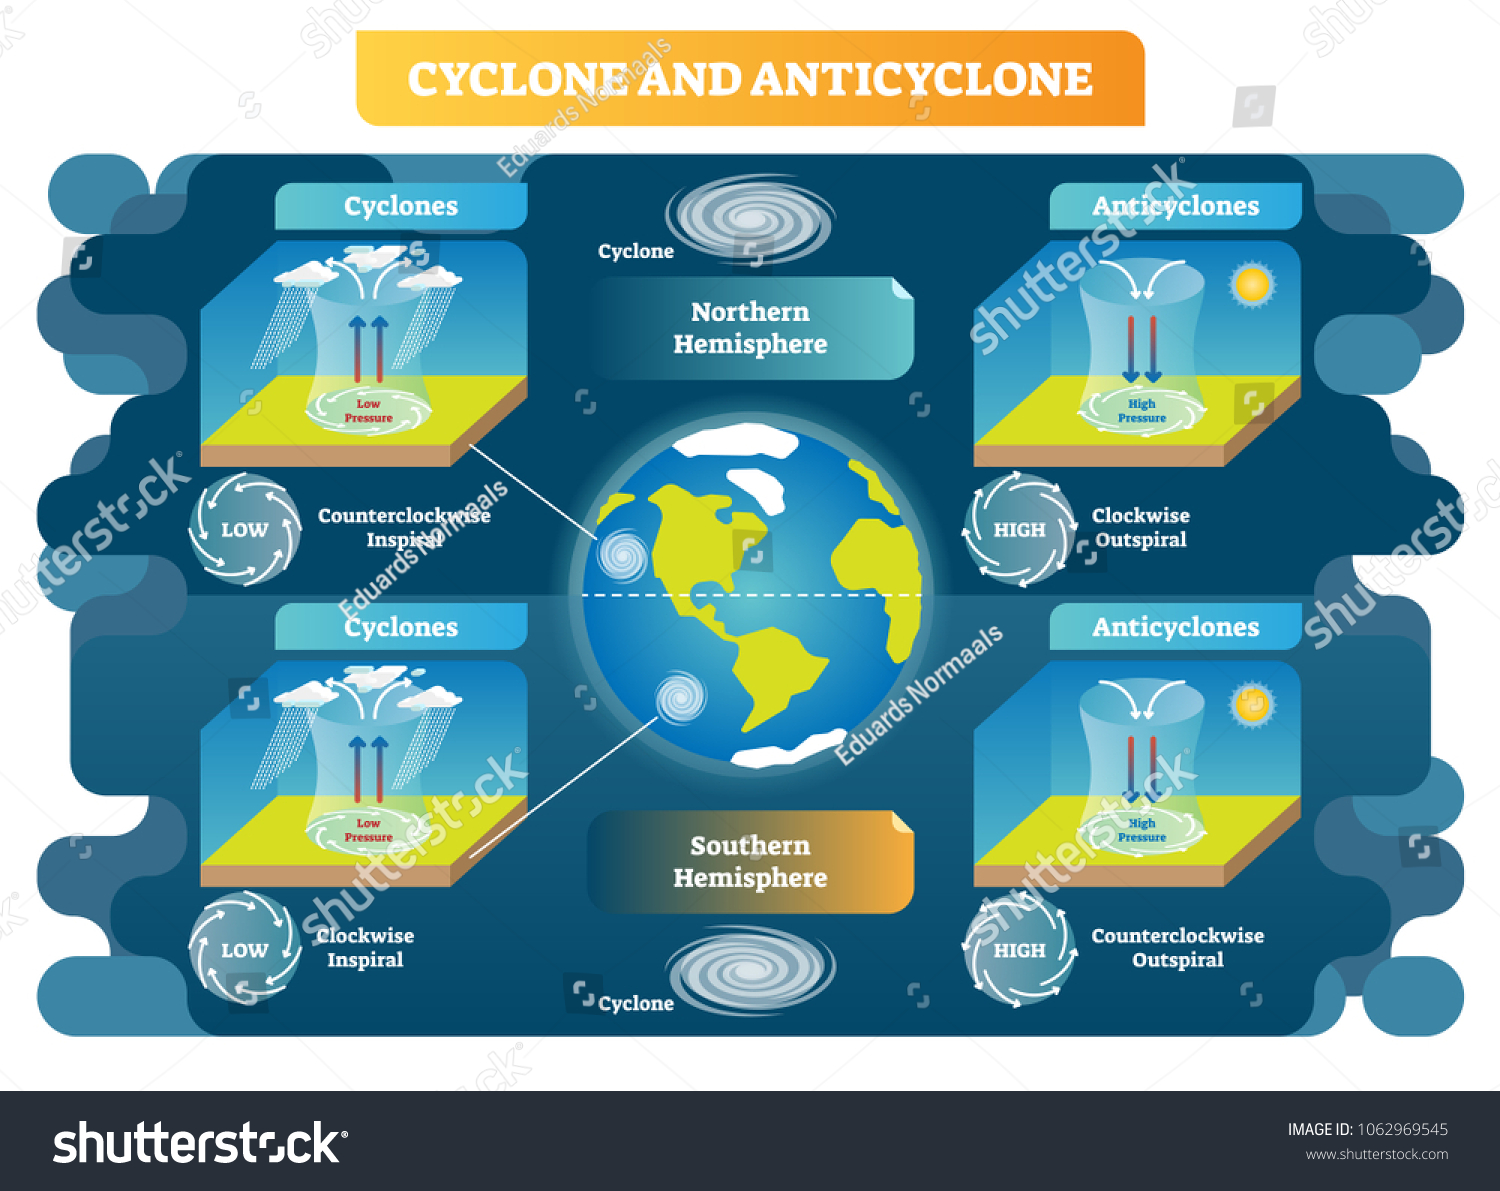 Cyclone and Anticyclone meteorology weather science vector illustration  diagram. Spiral and pressure types scheme on